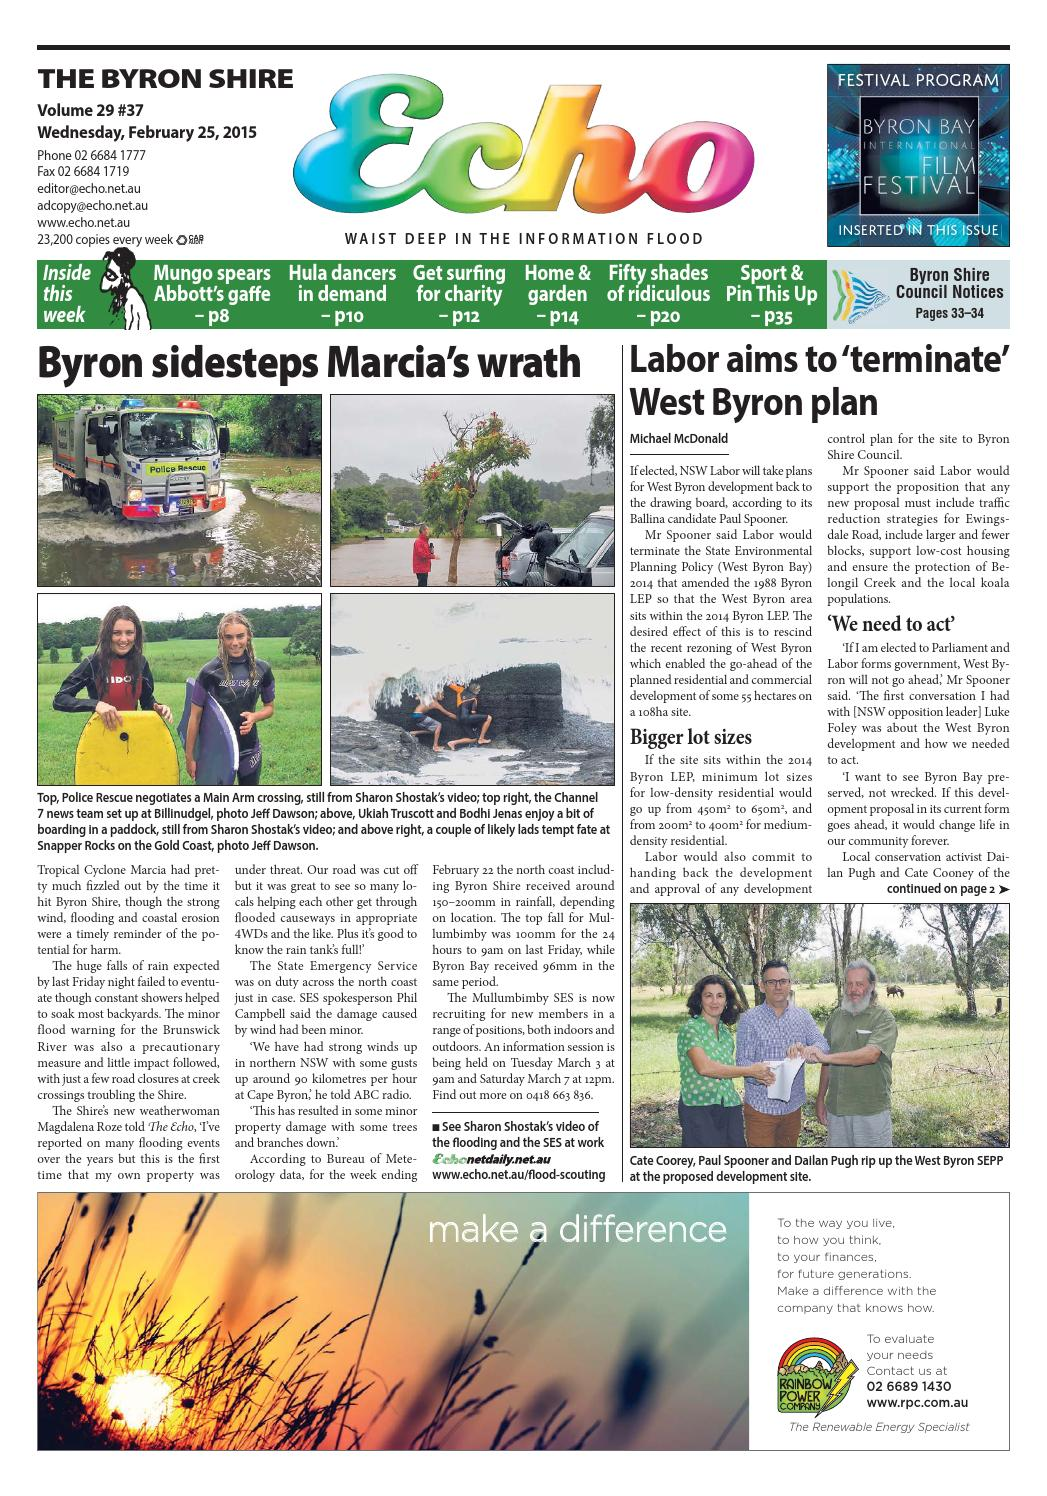 Byron Shire Echo – Issue 29.38 – 25/02/2015 by Echo Publications - issuu